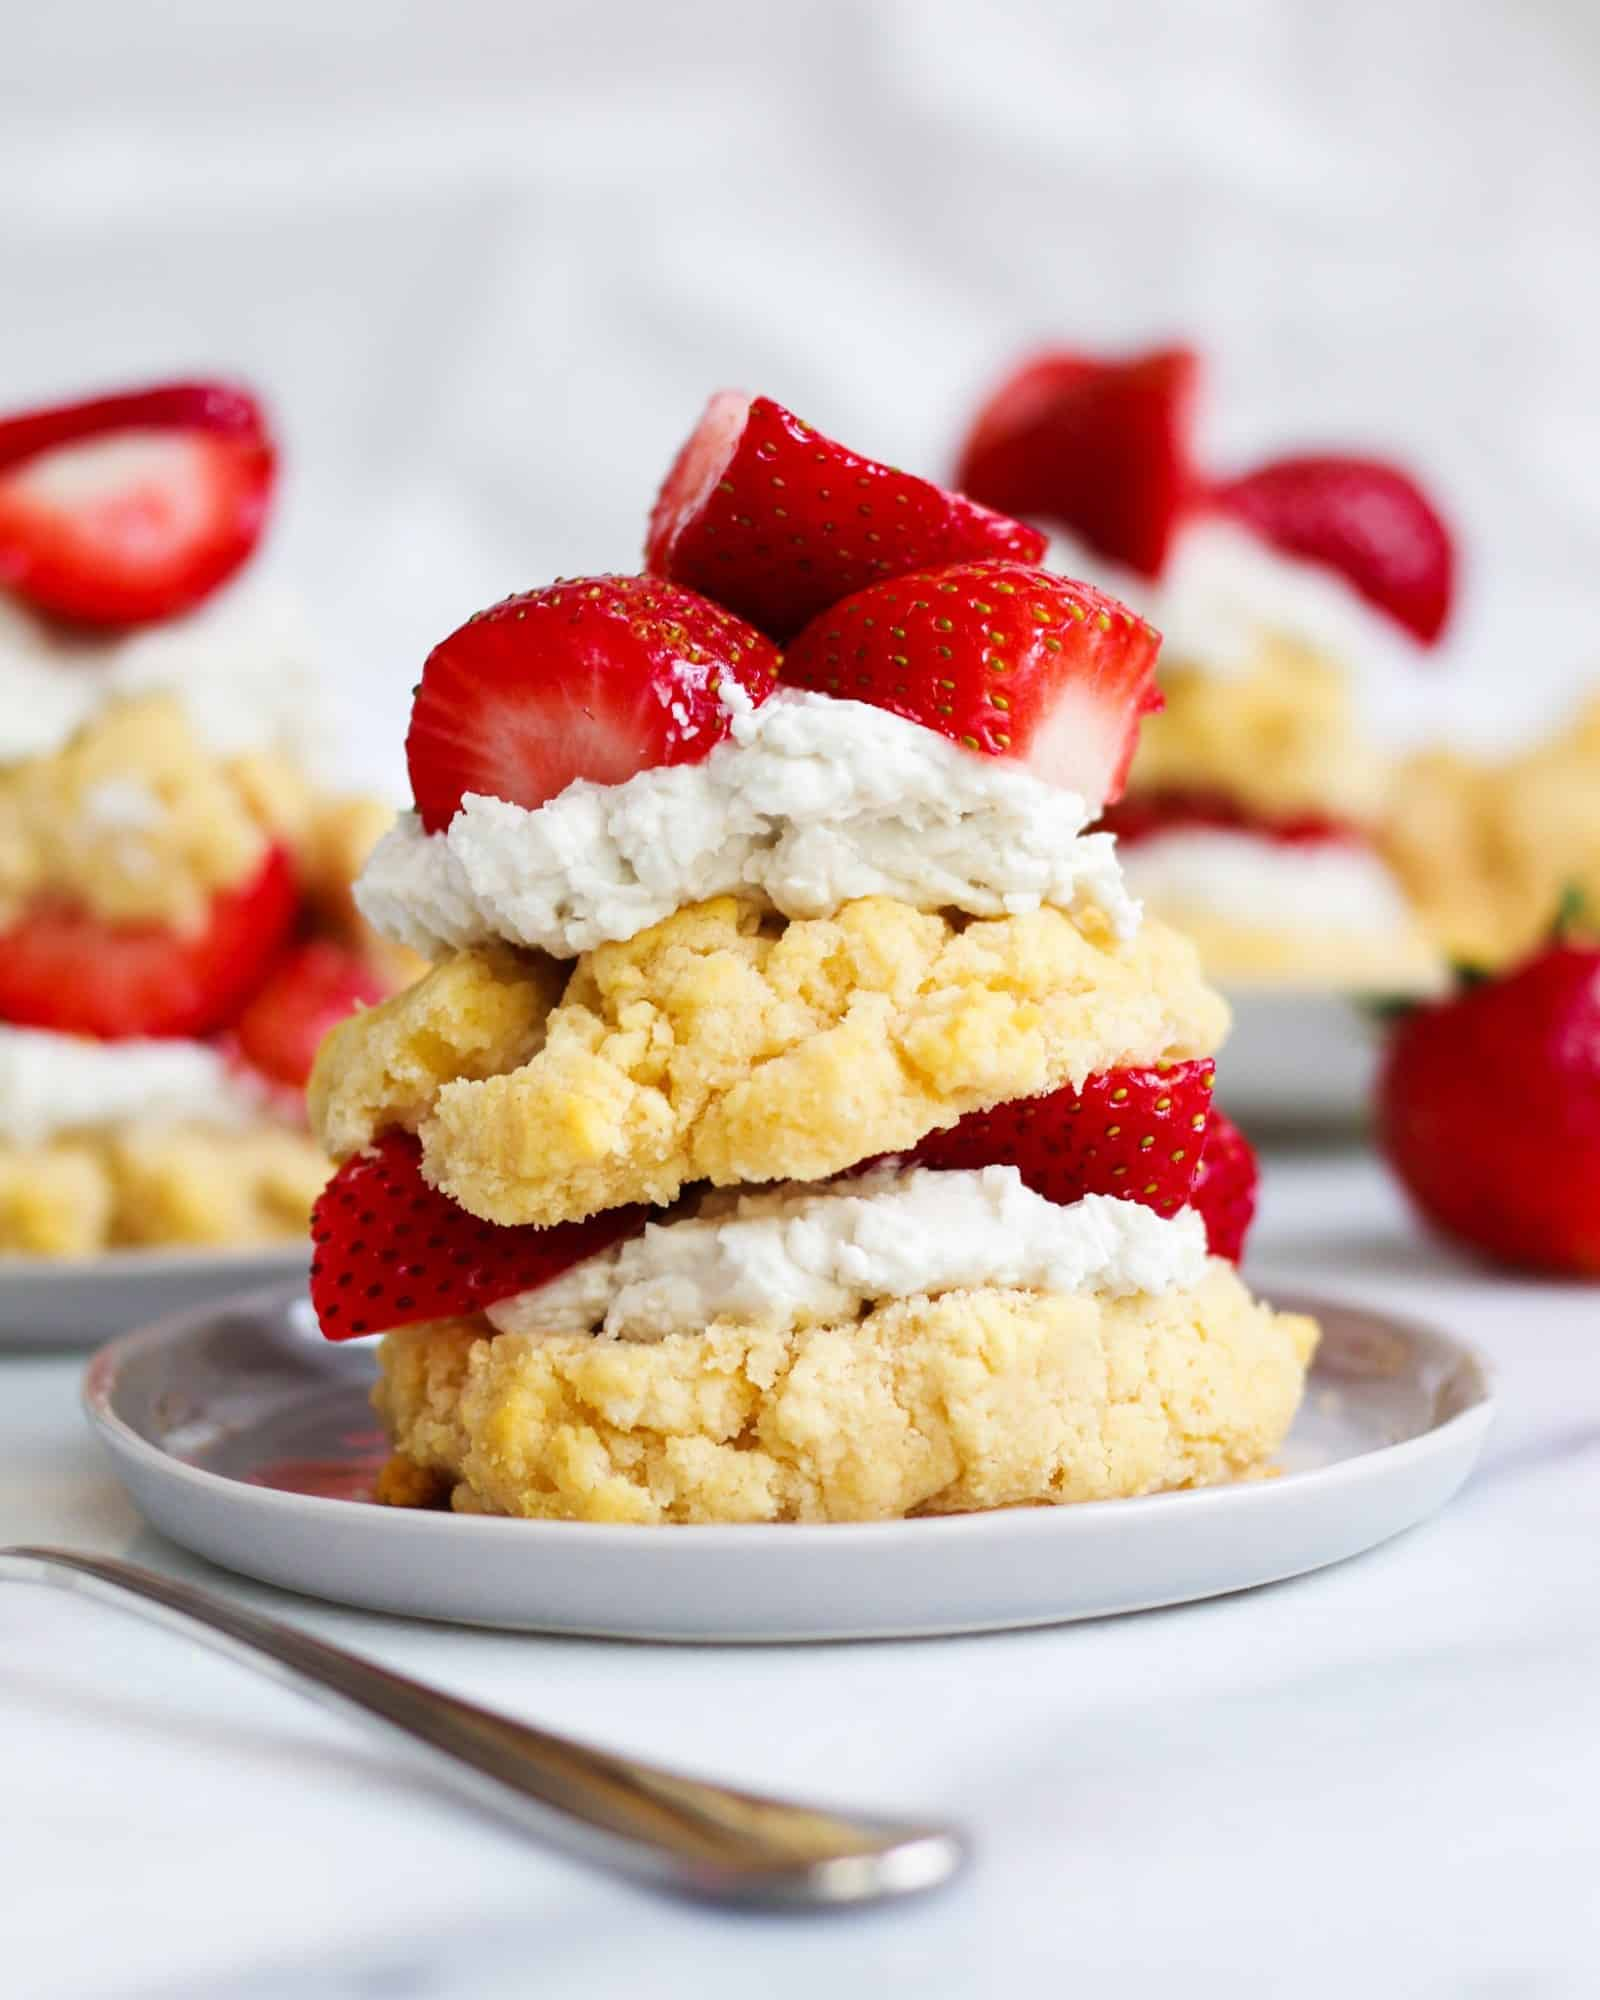 Paleo Strawberry Shortcake